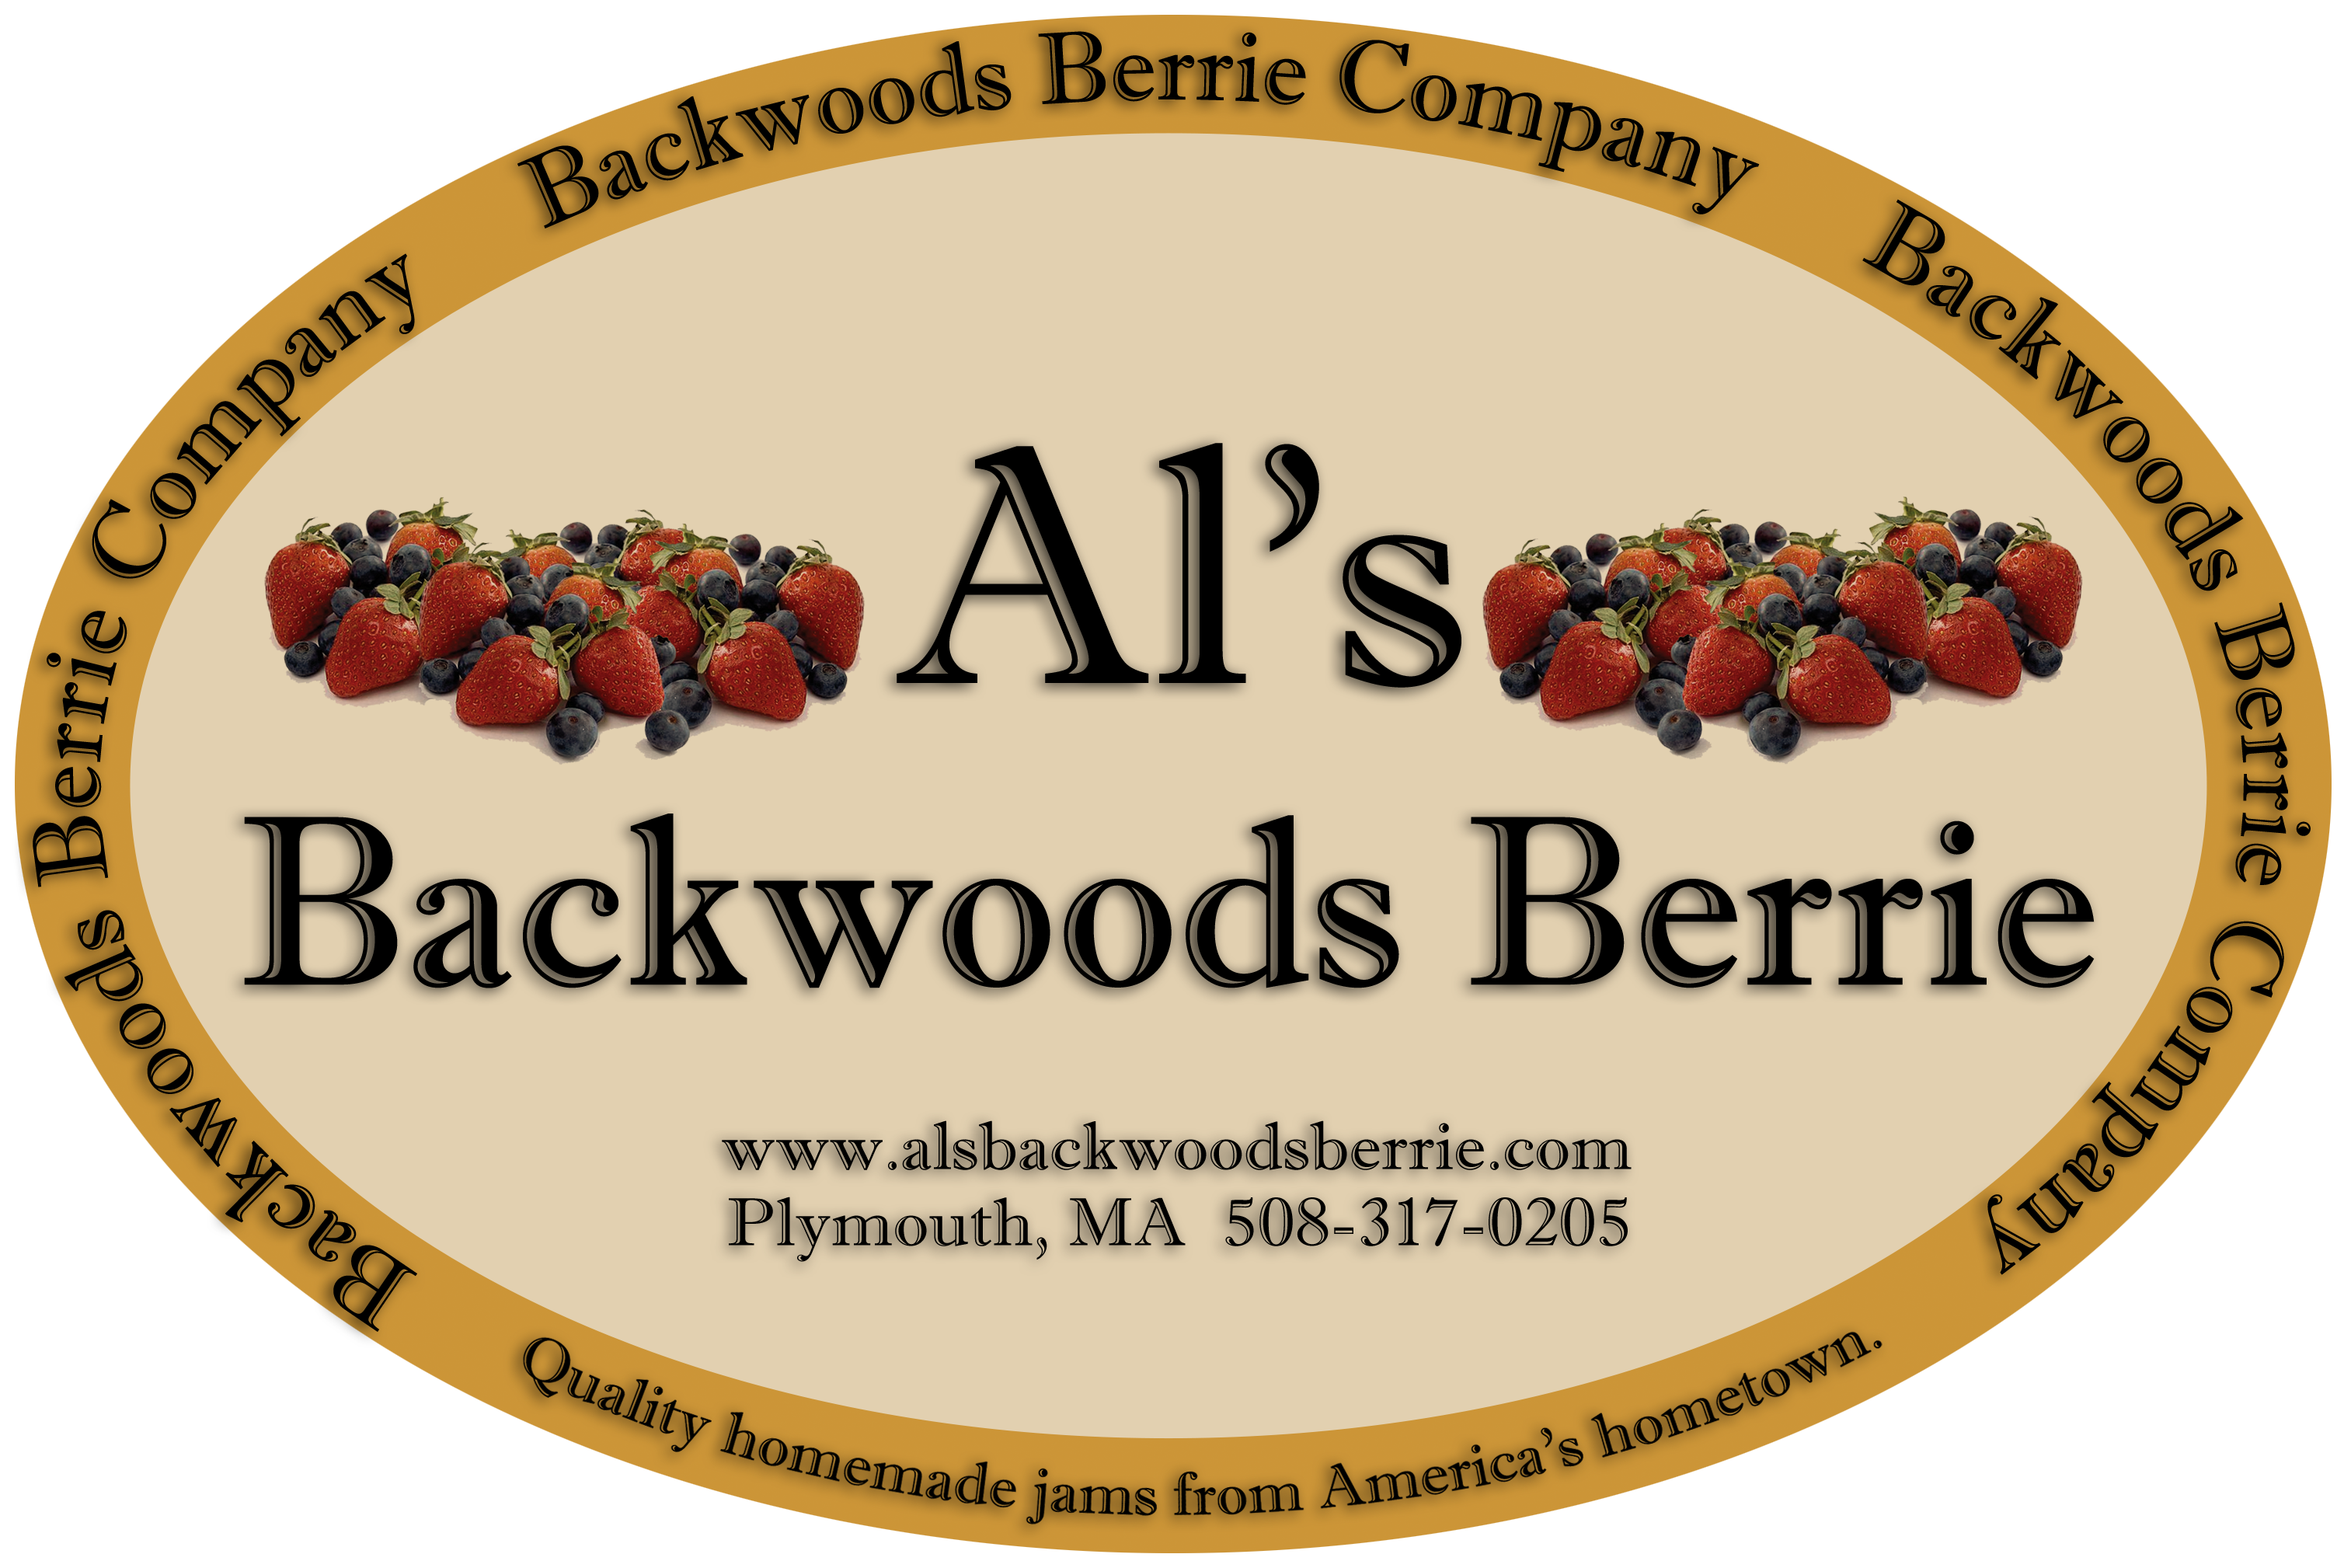 Al's Backwoods Berrie Co.